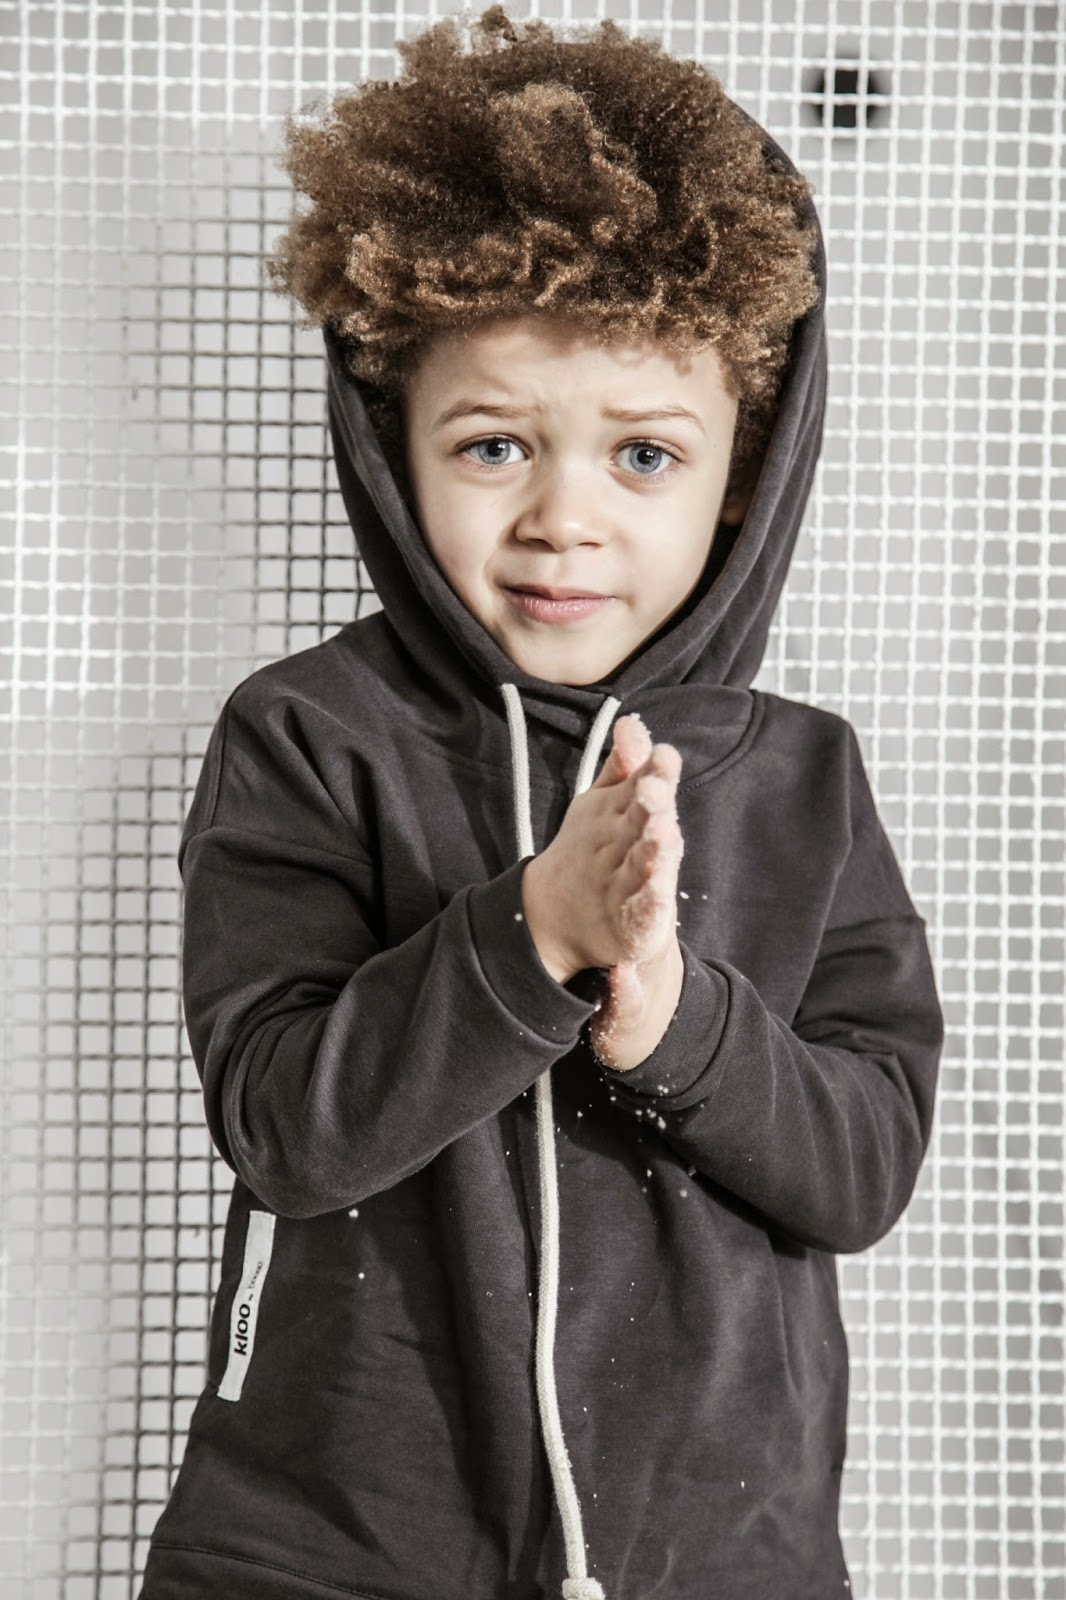 Kloo by Booso - Polish kids fashion spring-summer 2015 - black hoodie